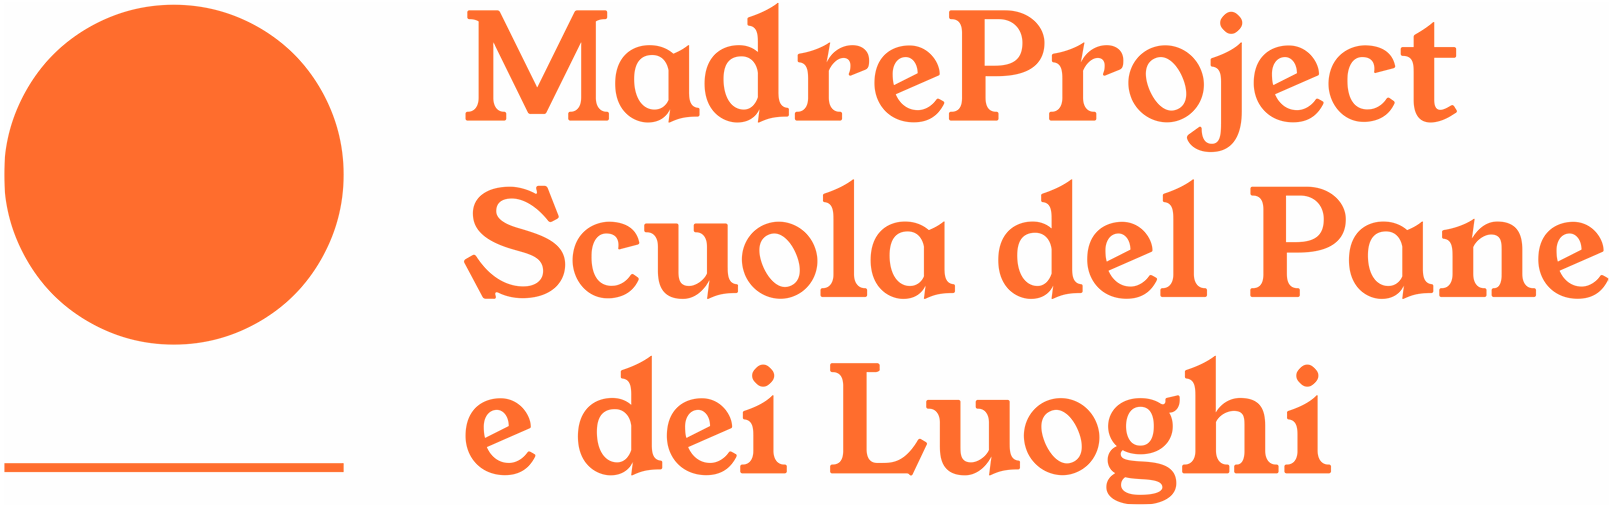 MadreProject